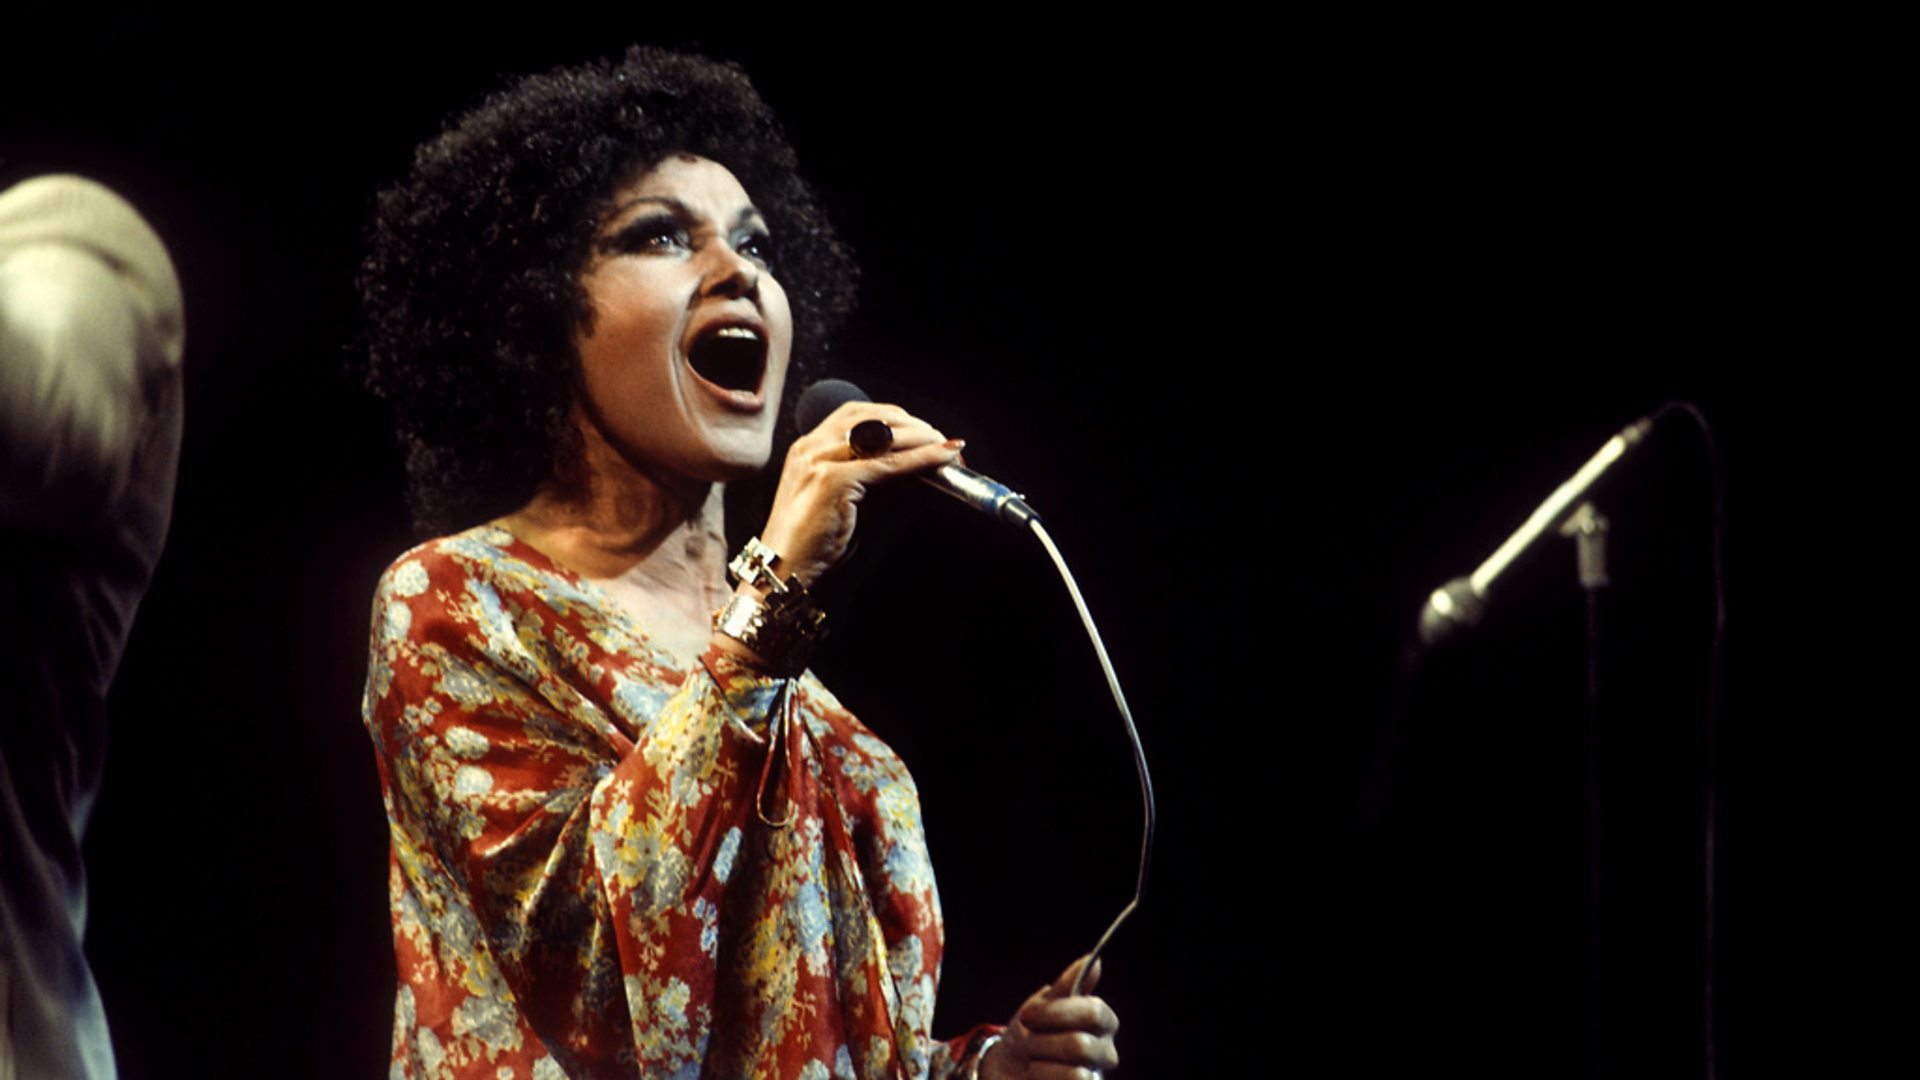 What's Hot On Pinterest Cleo Laine And It's Lighting Design 4 lighting design What's Hot On Pinterest: Cleo Laine And It's Lighting Design Whats Hot On Pinterest Cleo Laine And Its Lighting Design 4